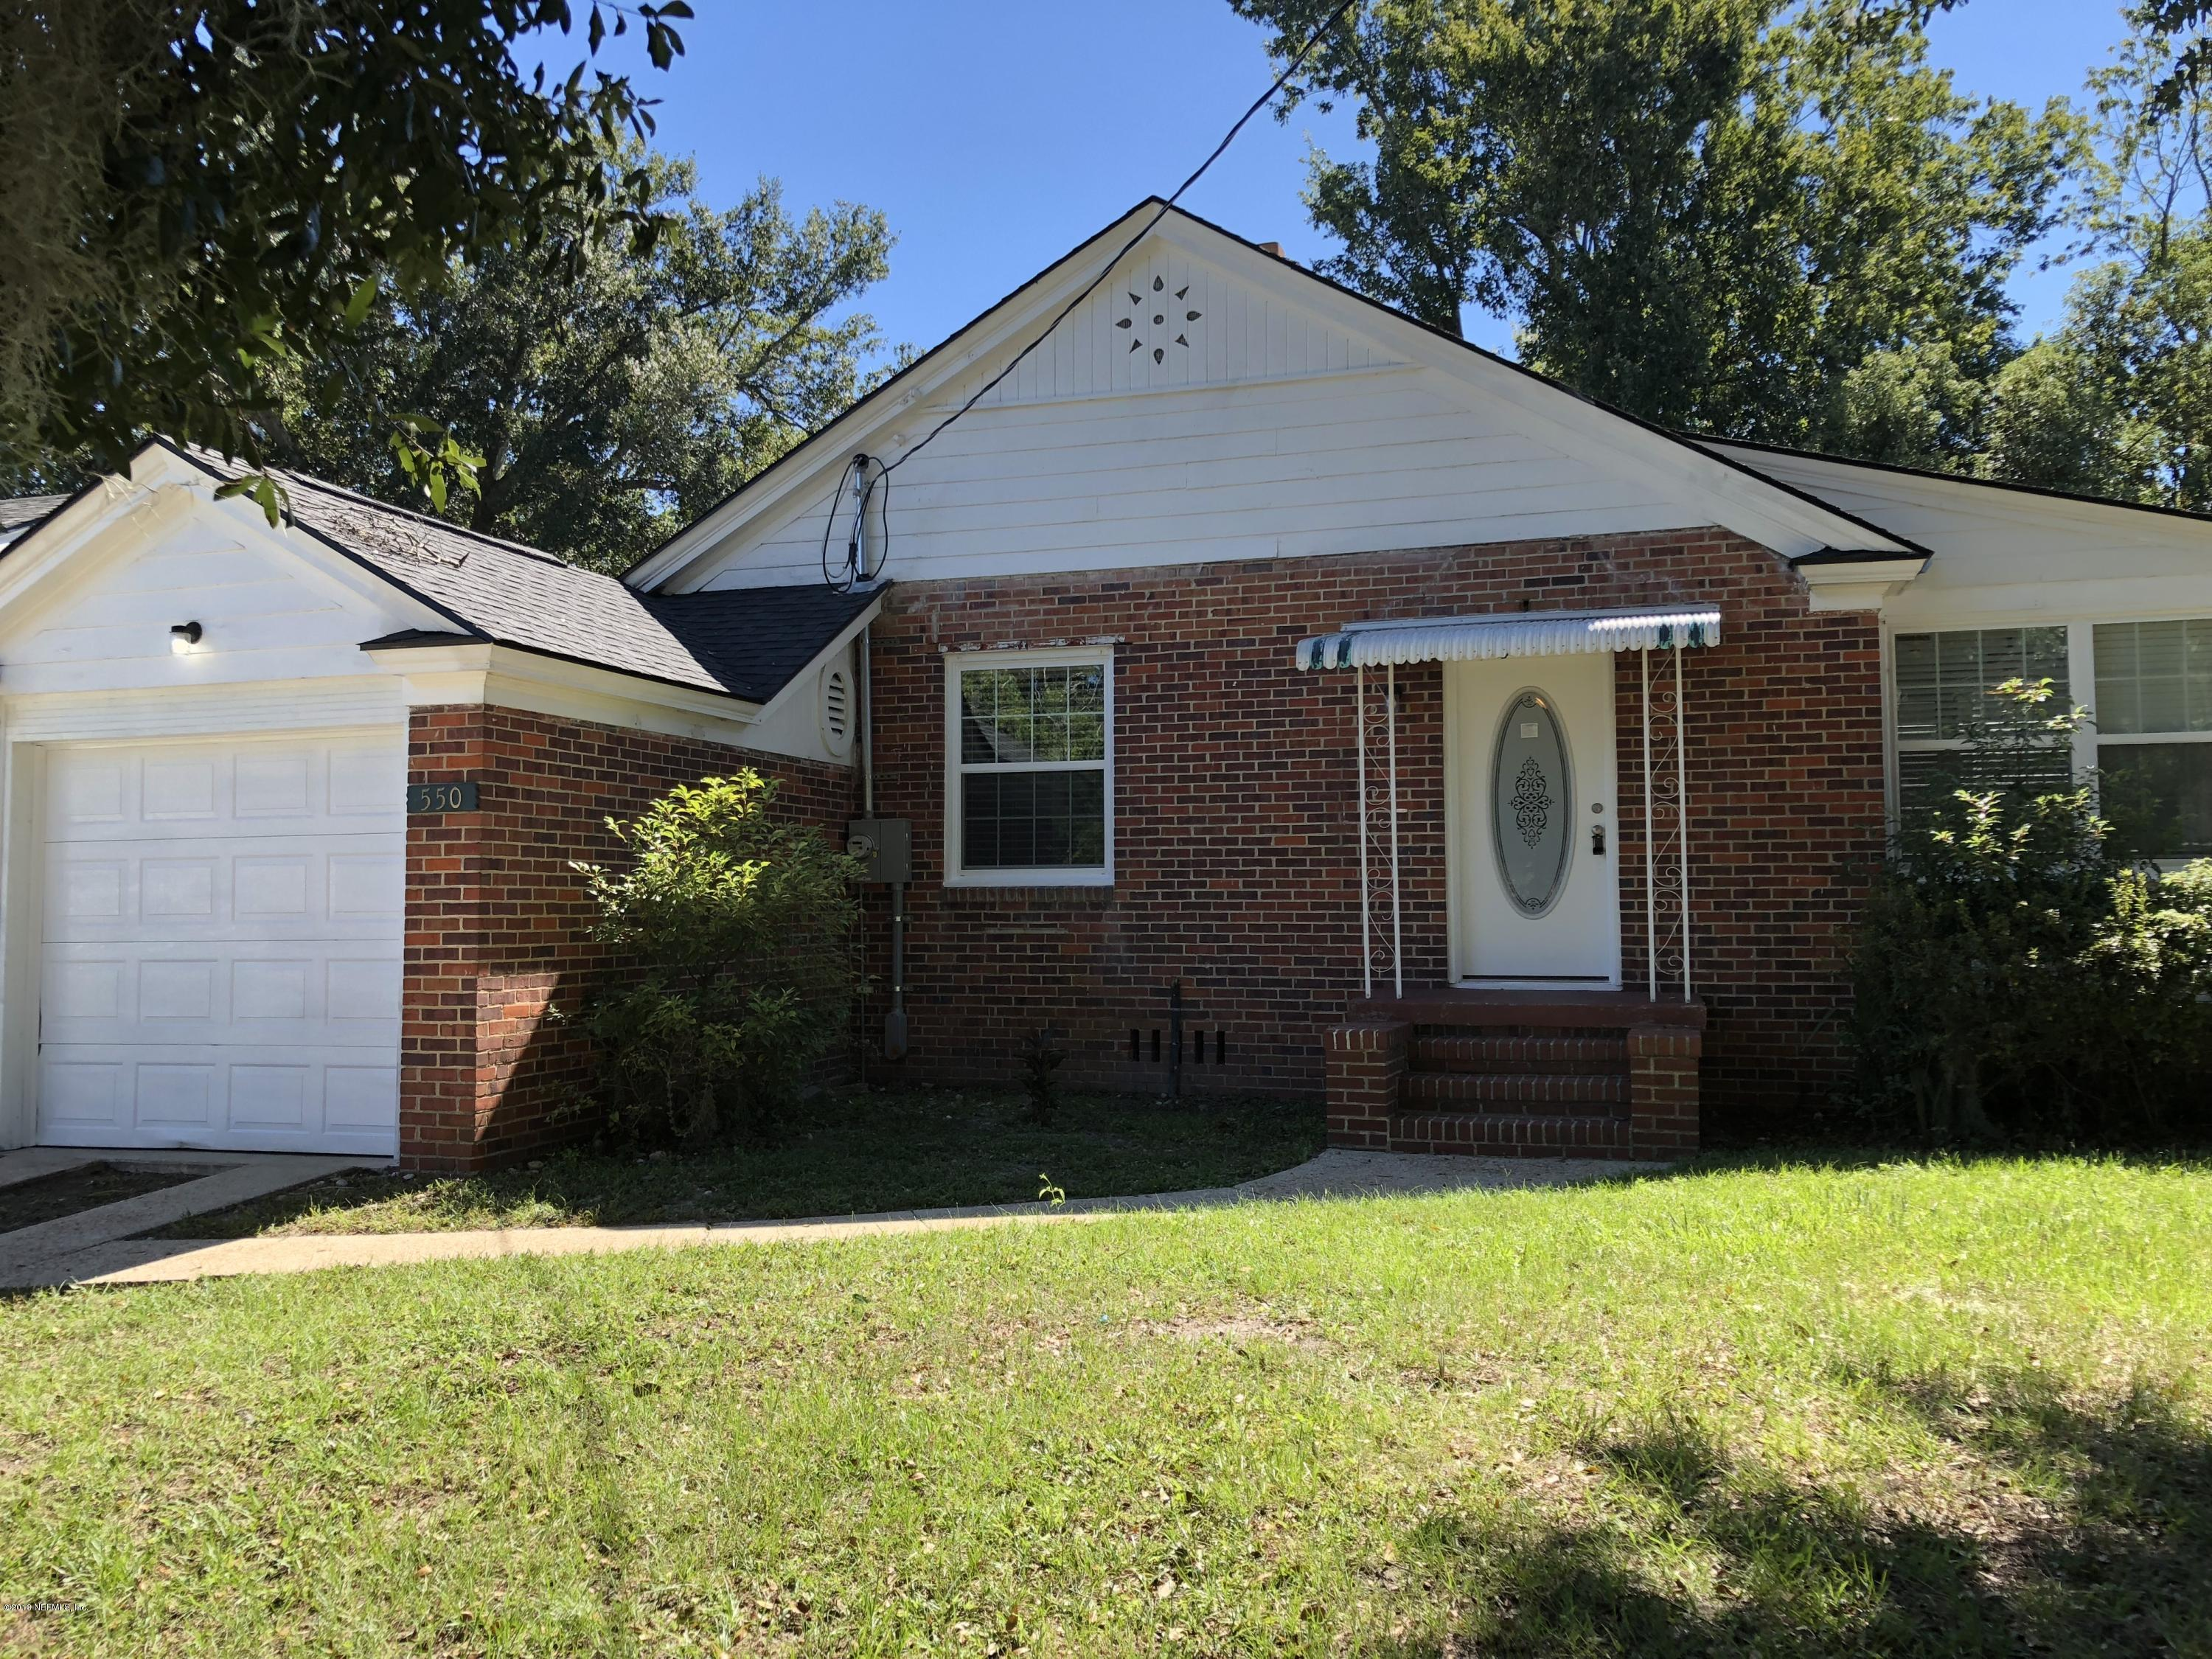 550 CHESTNUT, JACKSONVILLE, FLORIDA 32208, 2 Bedrooms Bedrooms, ,1 BathroomBathrooms,Residential - single family,For sale,CHESTNUT,965080